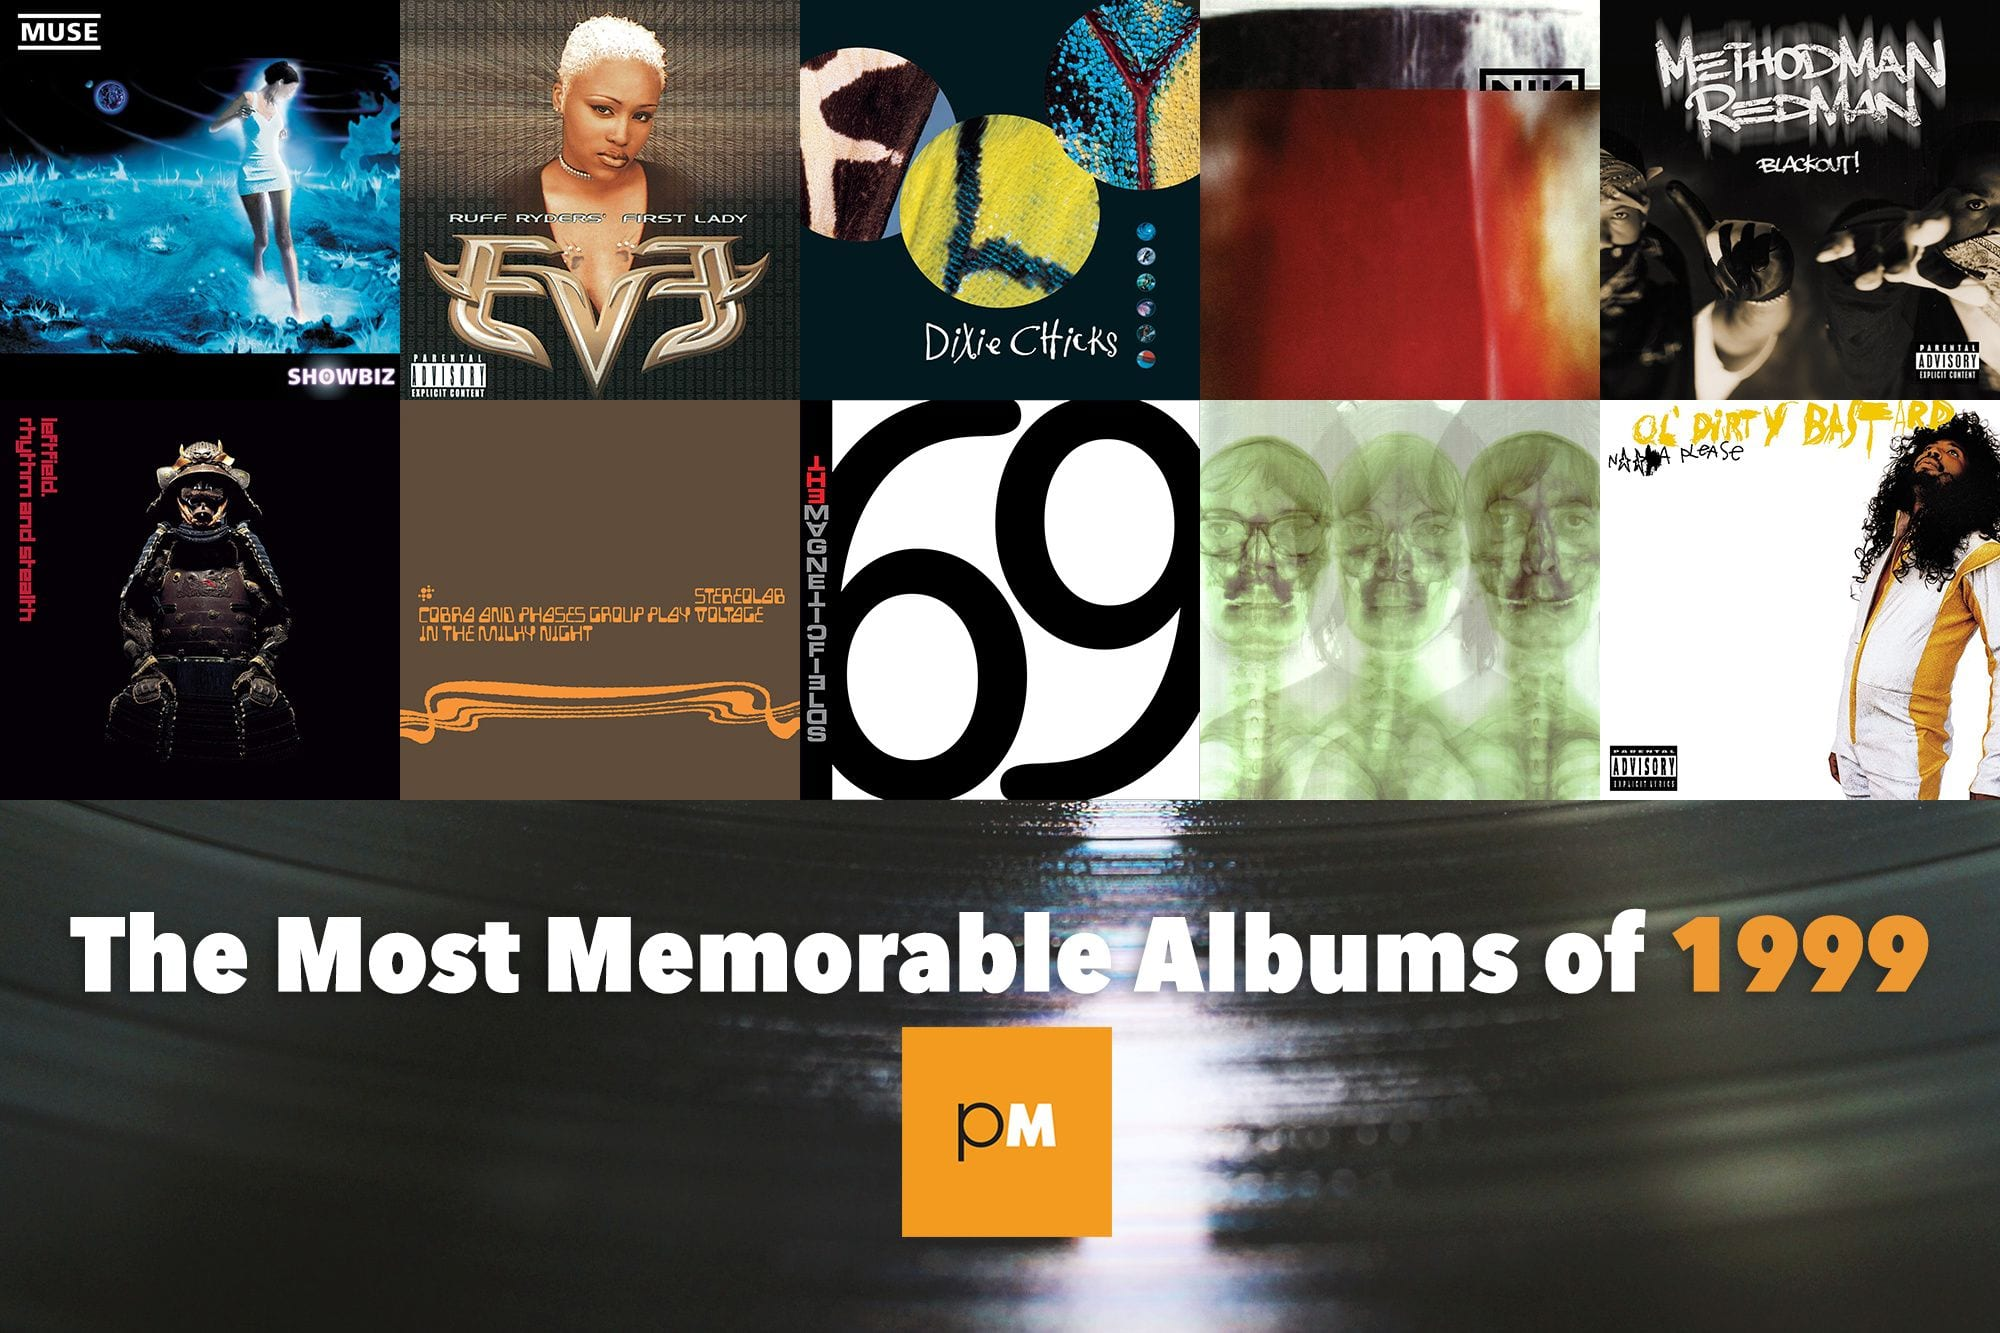 The Most Memorable Albums of 1999 (Part 4)